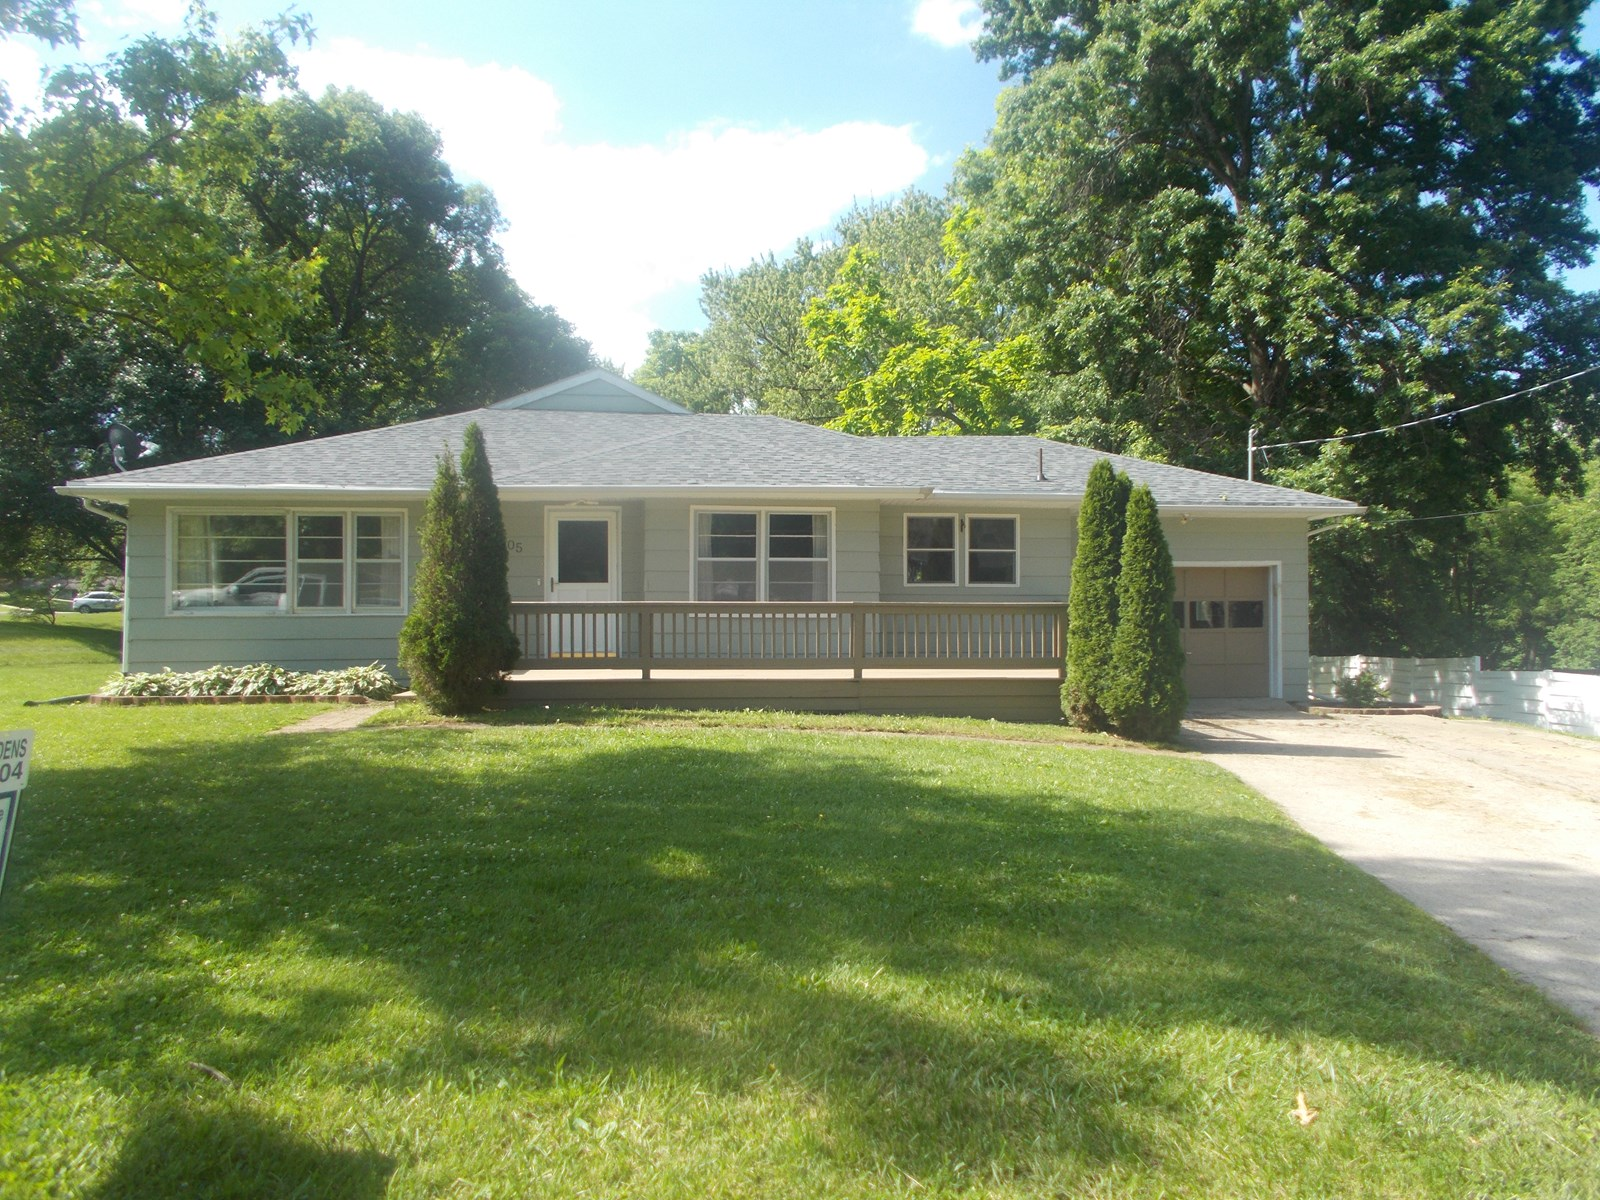 For Sale Large Ranch Home in Albany Missouri